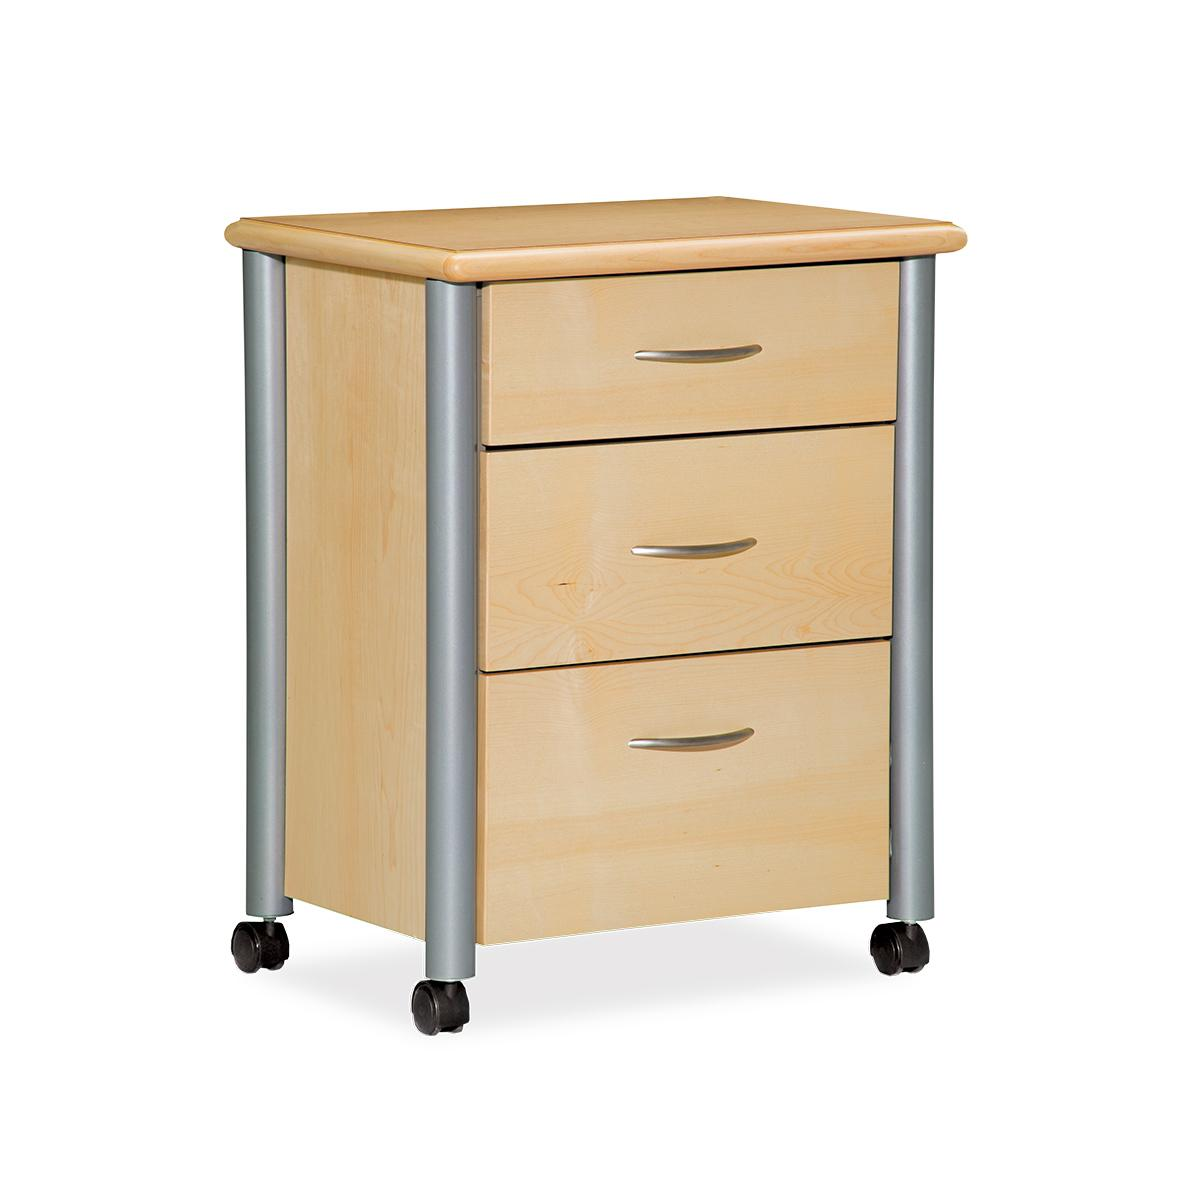 Art of Care Metropolitan and Aero Bedside Cabinets, metro cabinet, 3/4 view